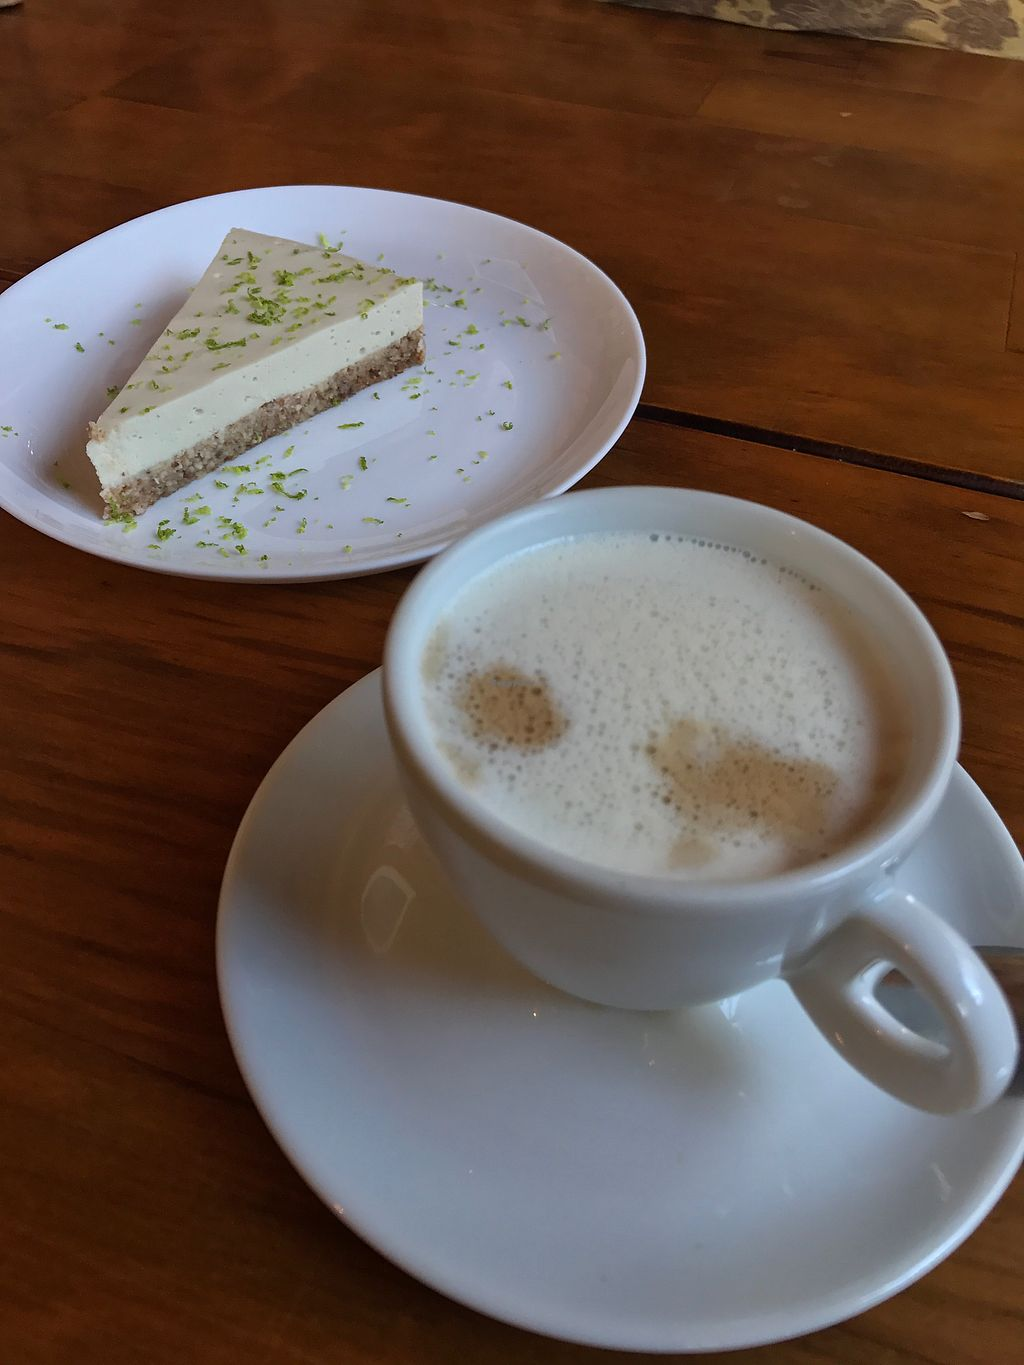 """Photo of Cravo e Canela  by <a href=""""/members/profile/monizebn"""">monizebn</a> <br/>Raw lemon pie and coffee  <br/> August 10, 2017  - <a href='/contact/abuse/image/72773/290988'>Report</a>"""